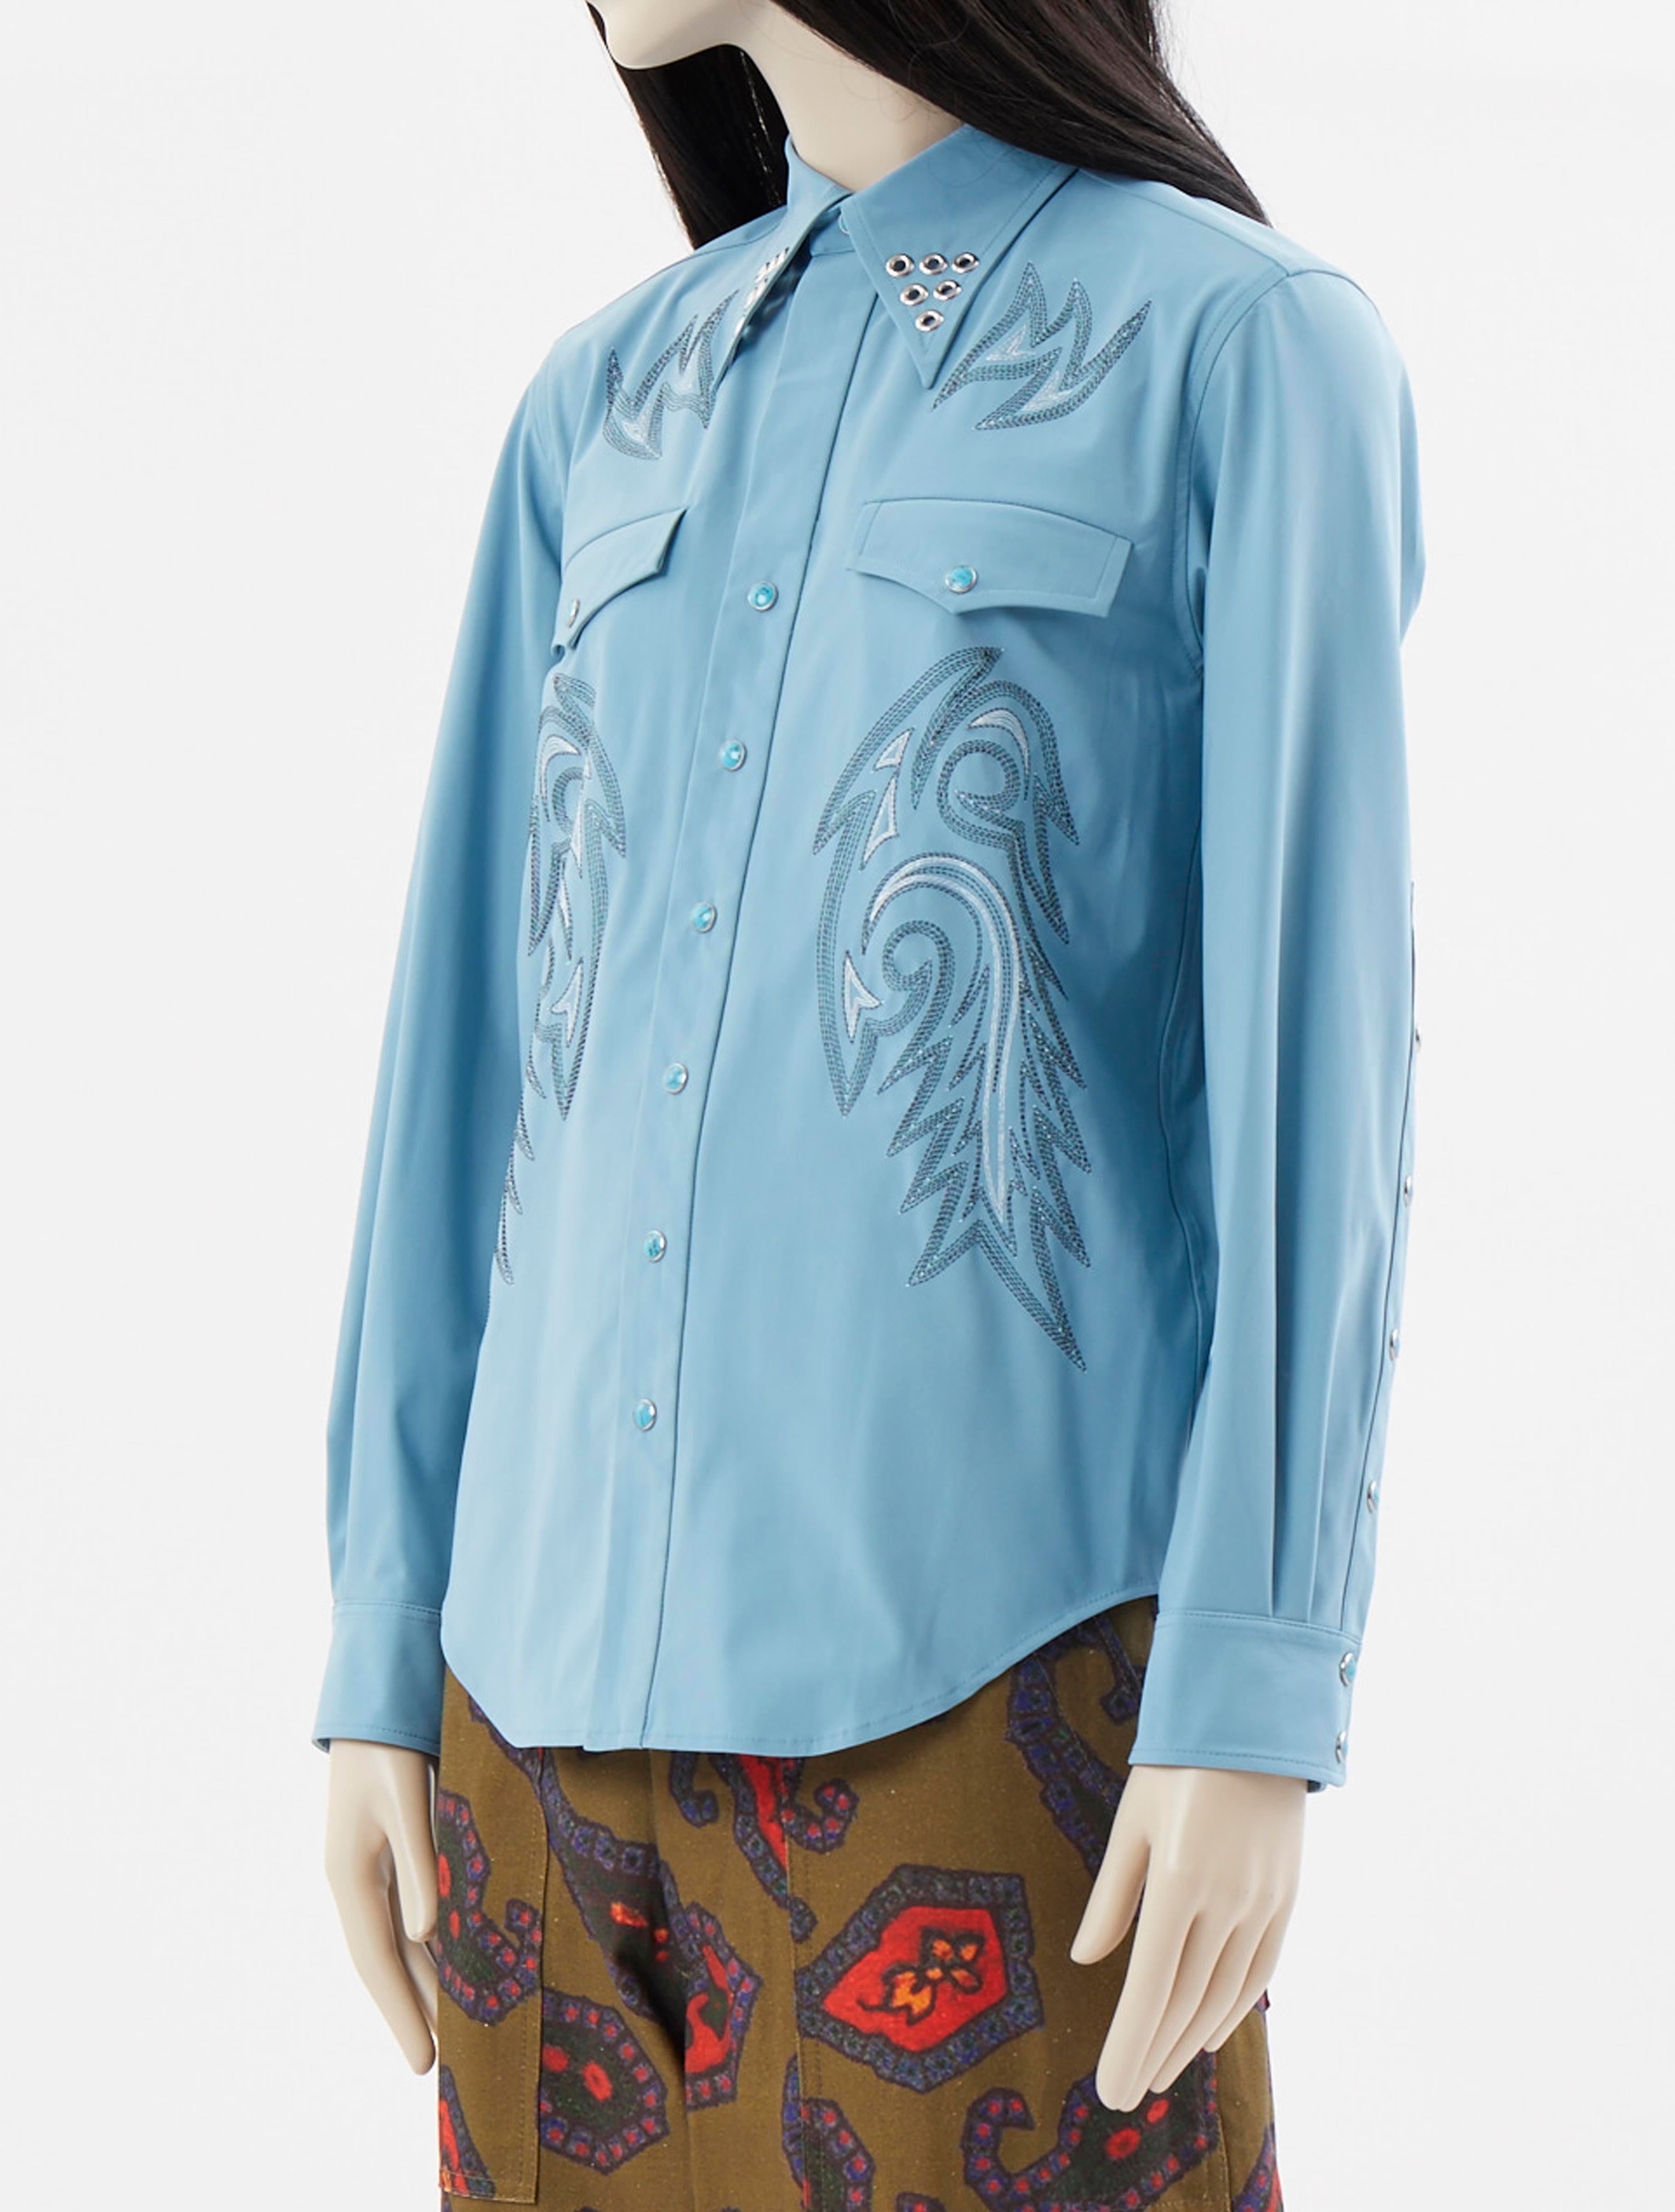 Toga Pulla Embroidery Shirt